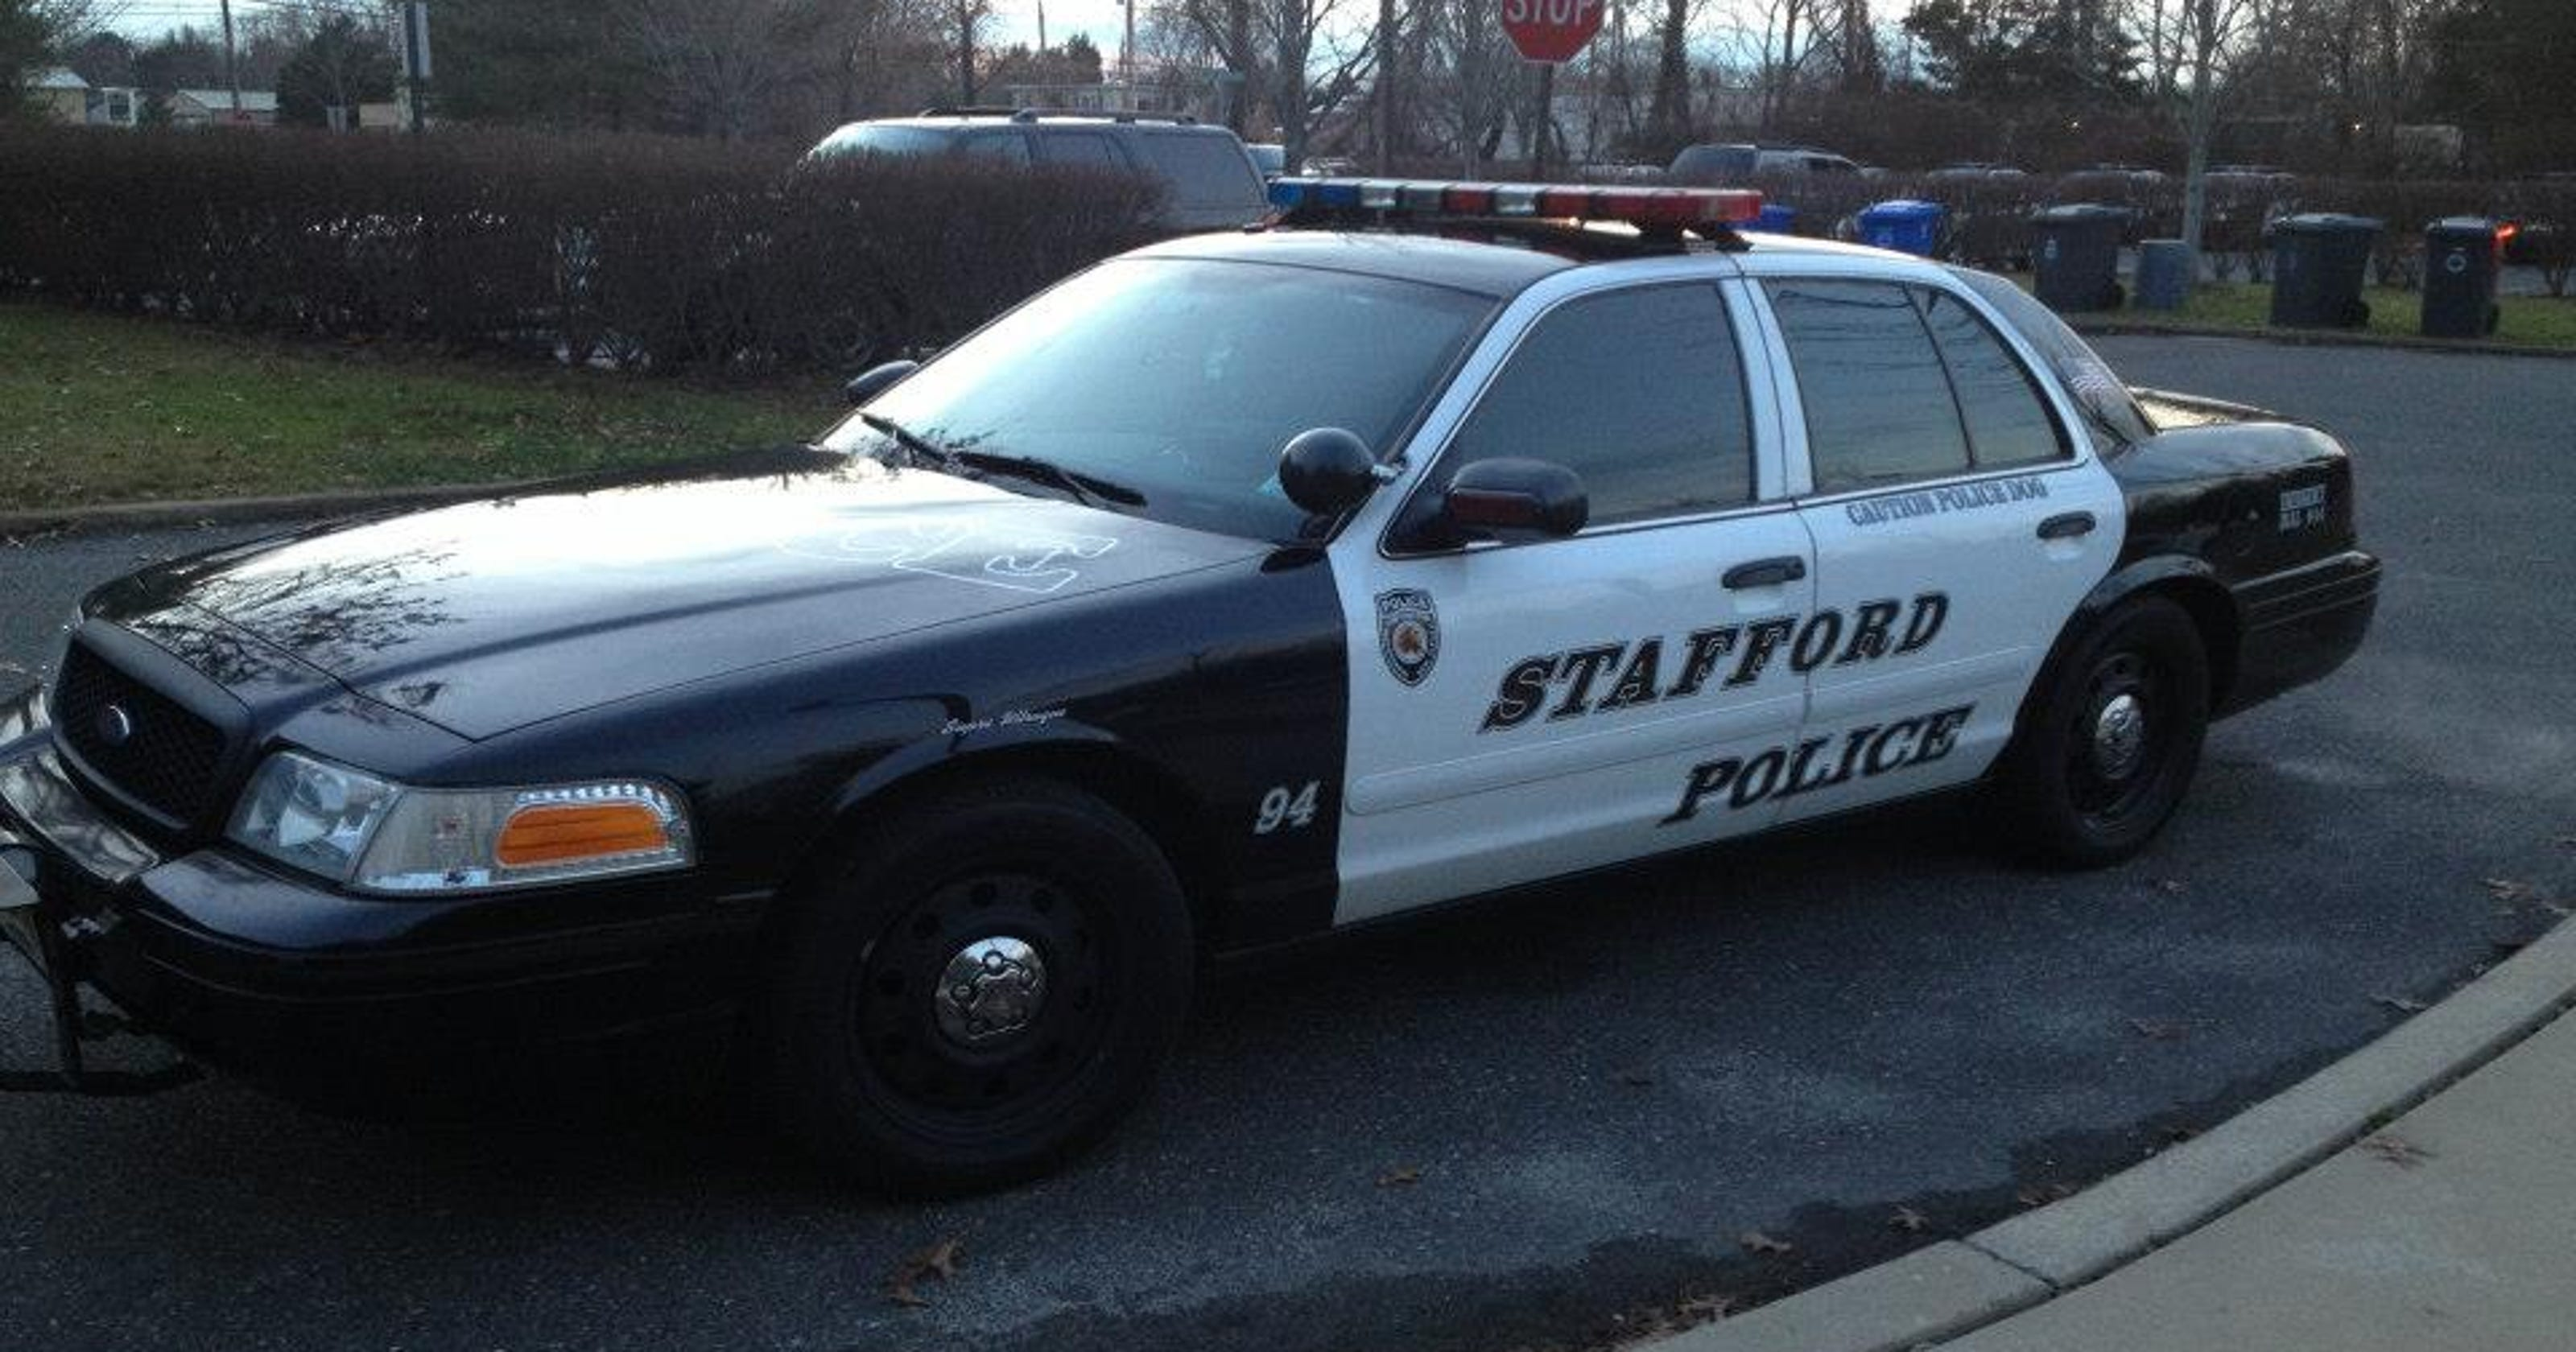 Woman hit by car, killed in Stafford